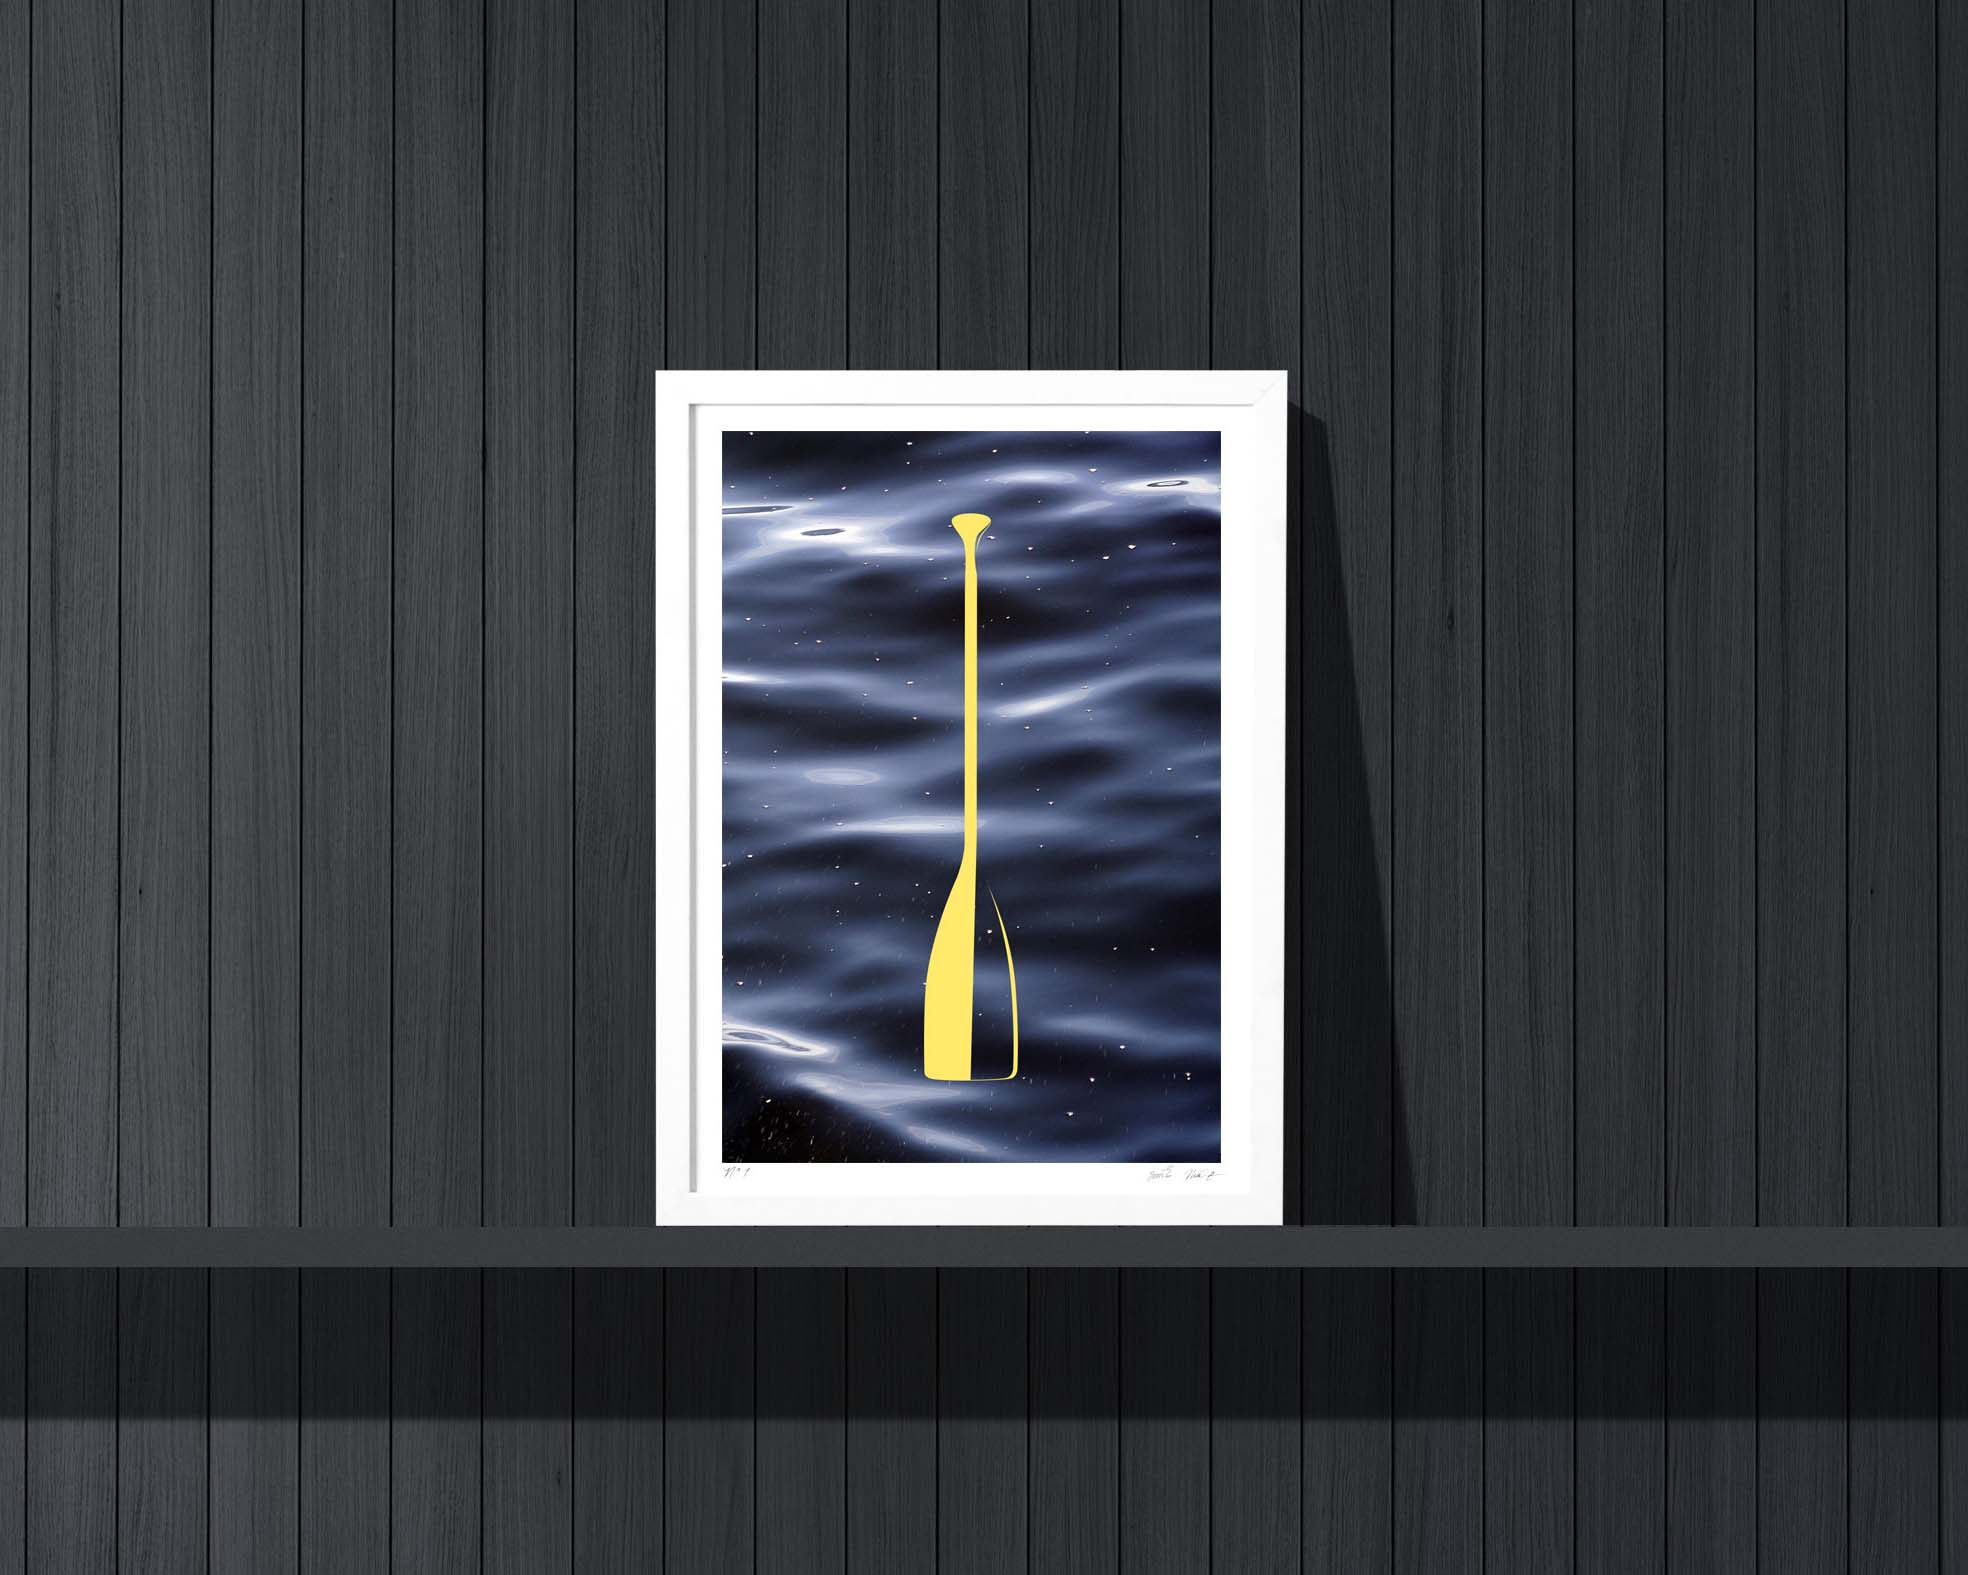 Cabin art and decor: A hand made paddle art print over a water photograph.